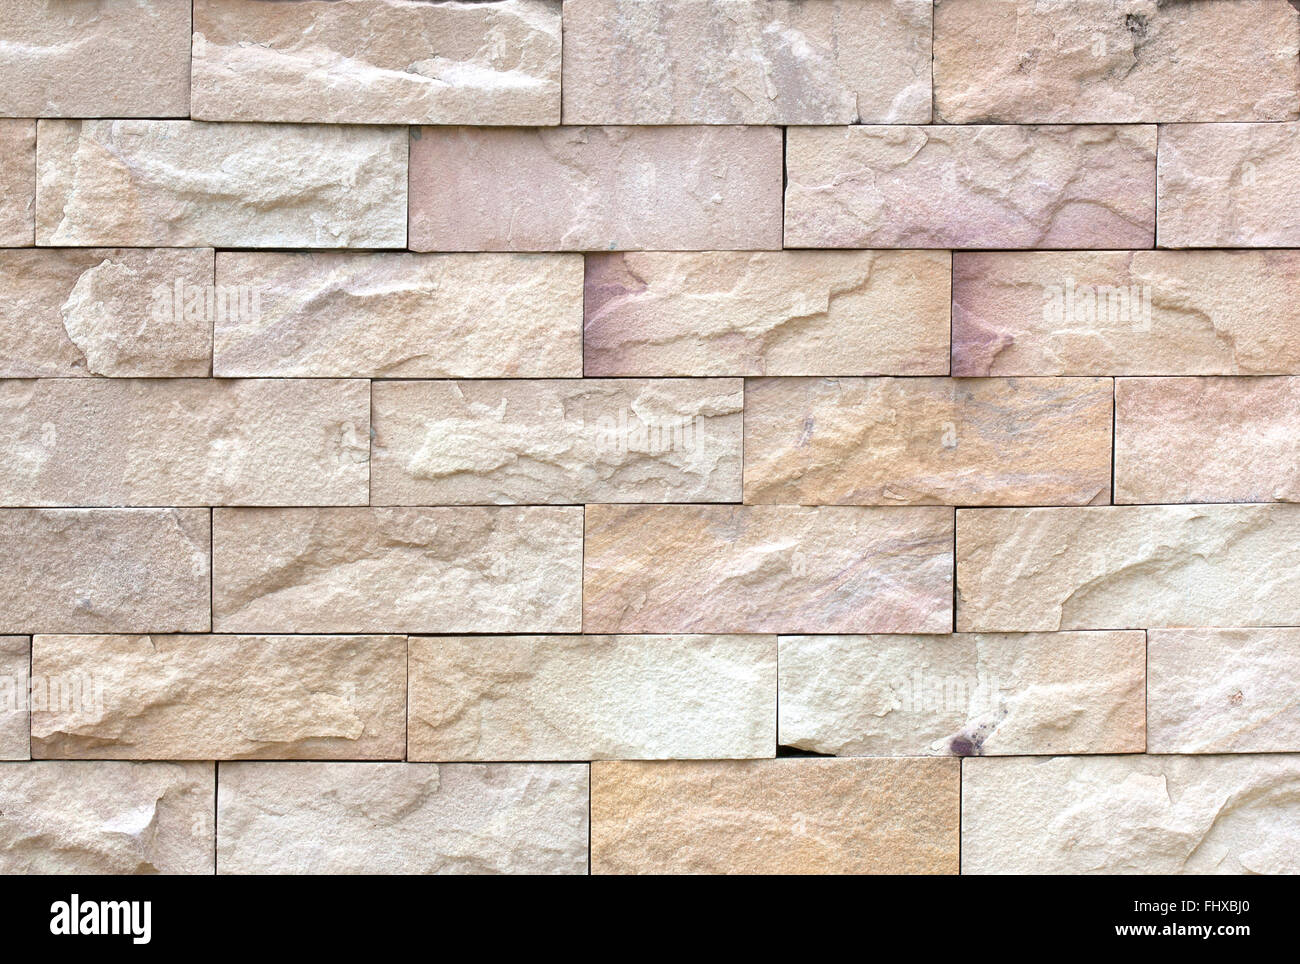 Texture of stone walls exterior durability construction for External wall materials